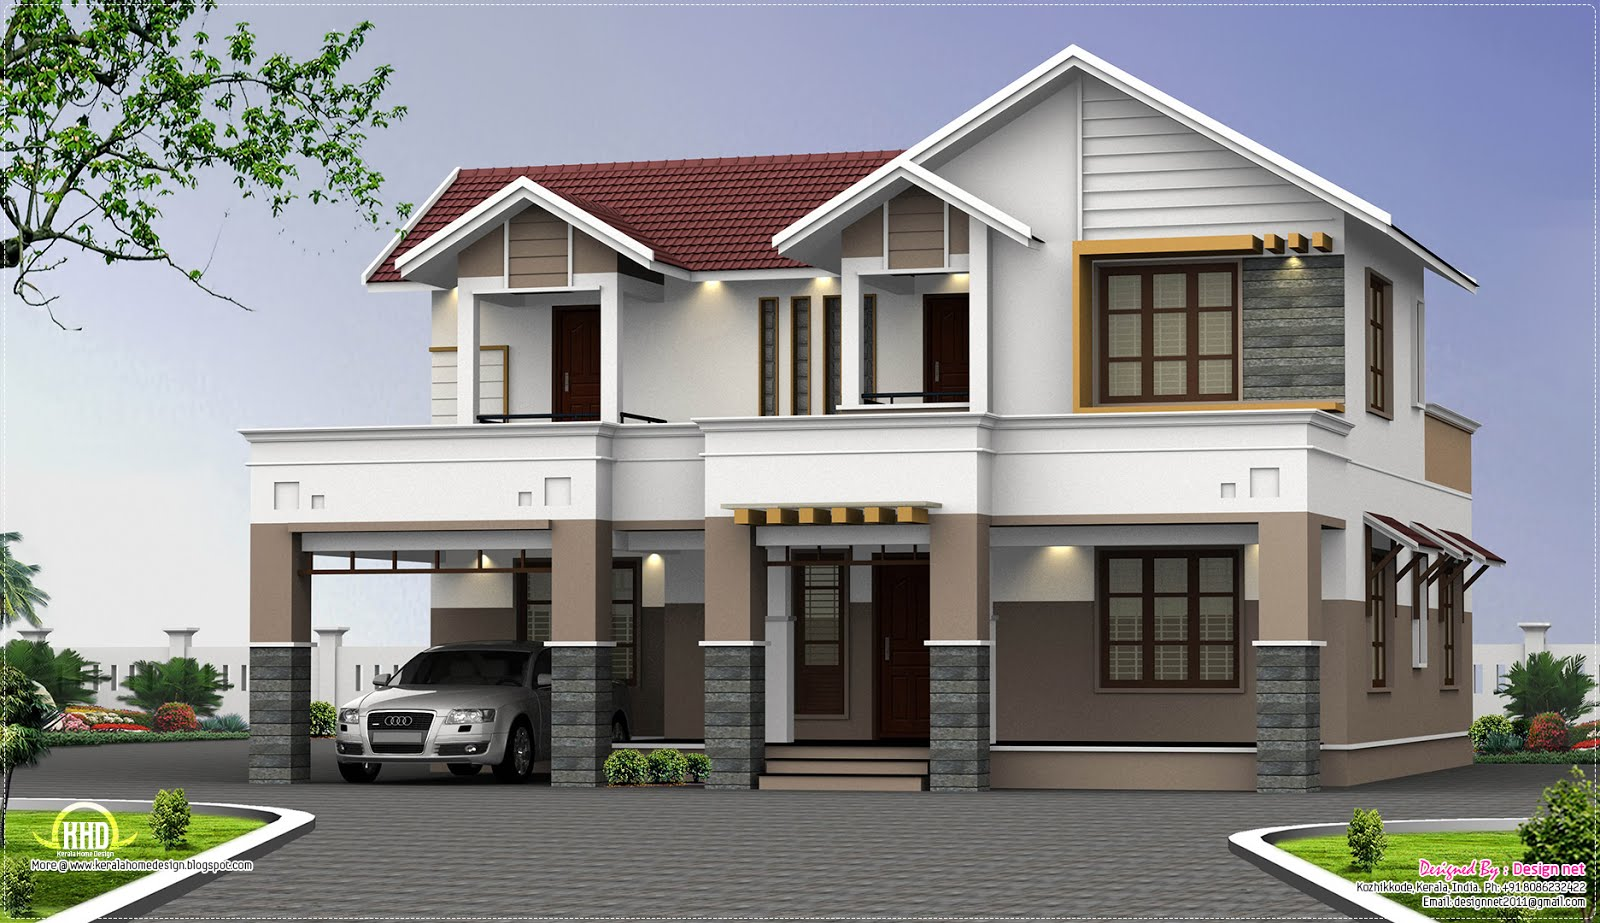 Two-Storey House Plans